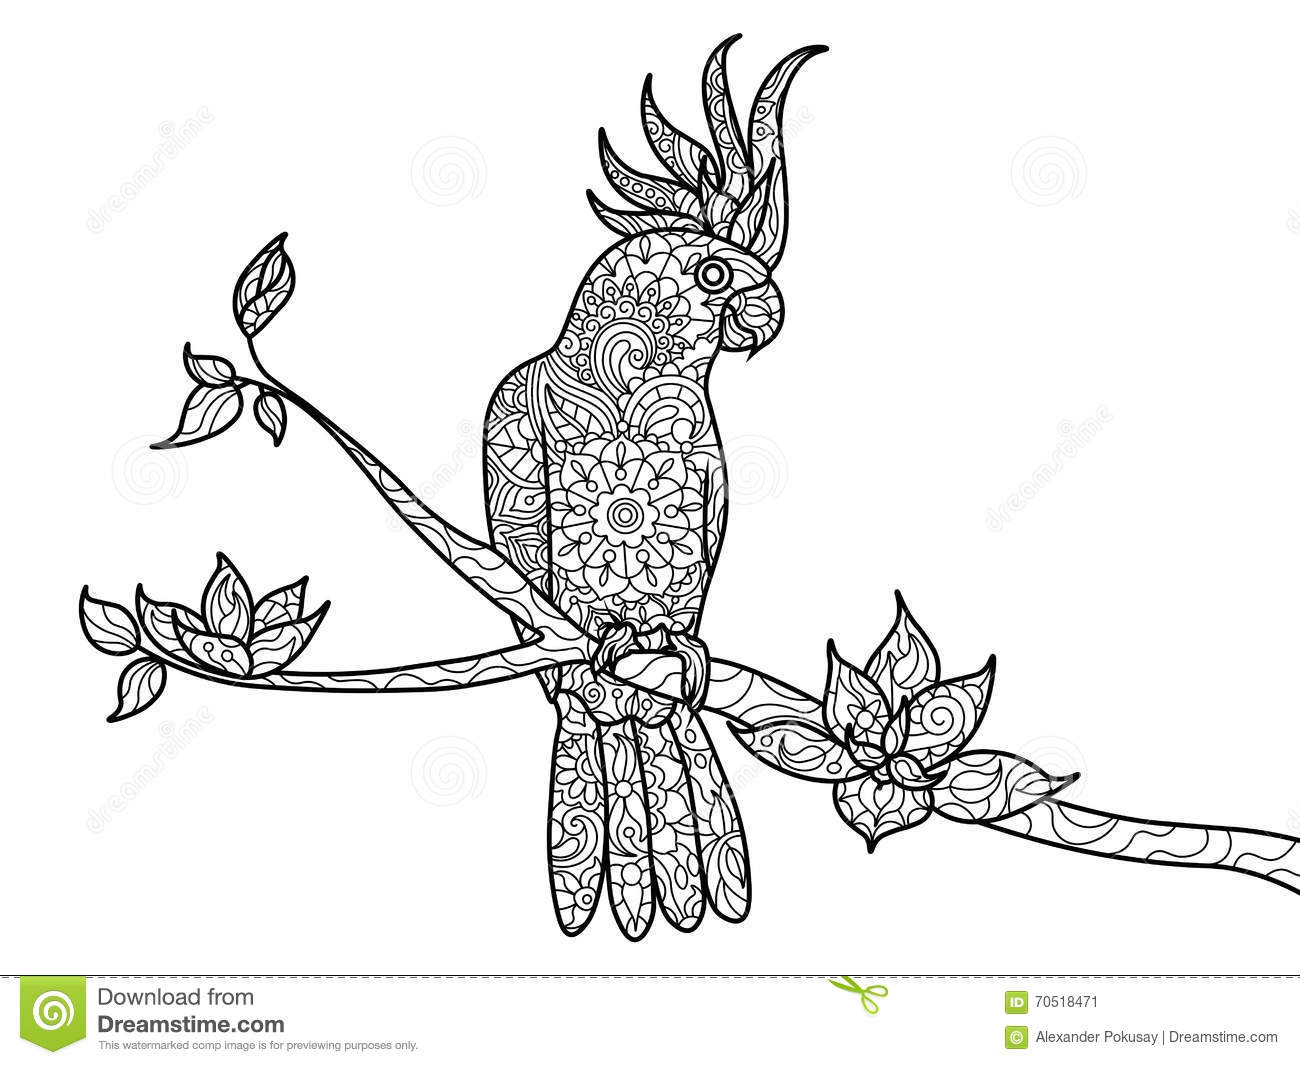 Cockatoo Parrot Coloring Book For Adults Vector Stock Vector - Image ...